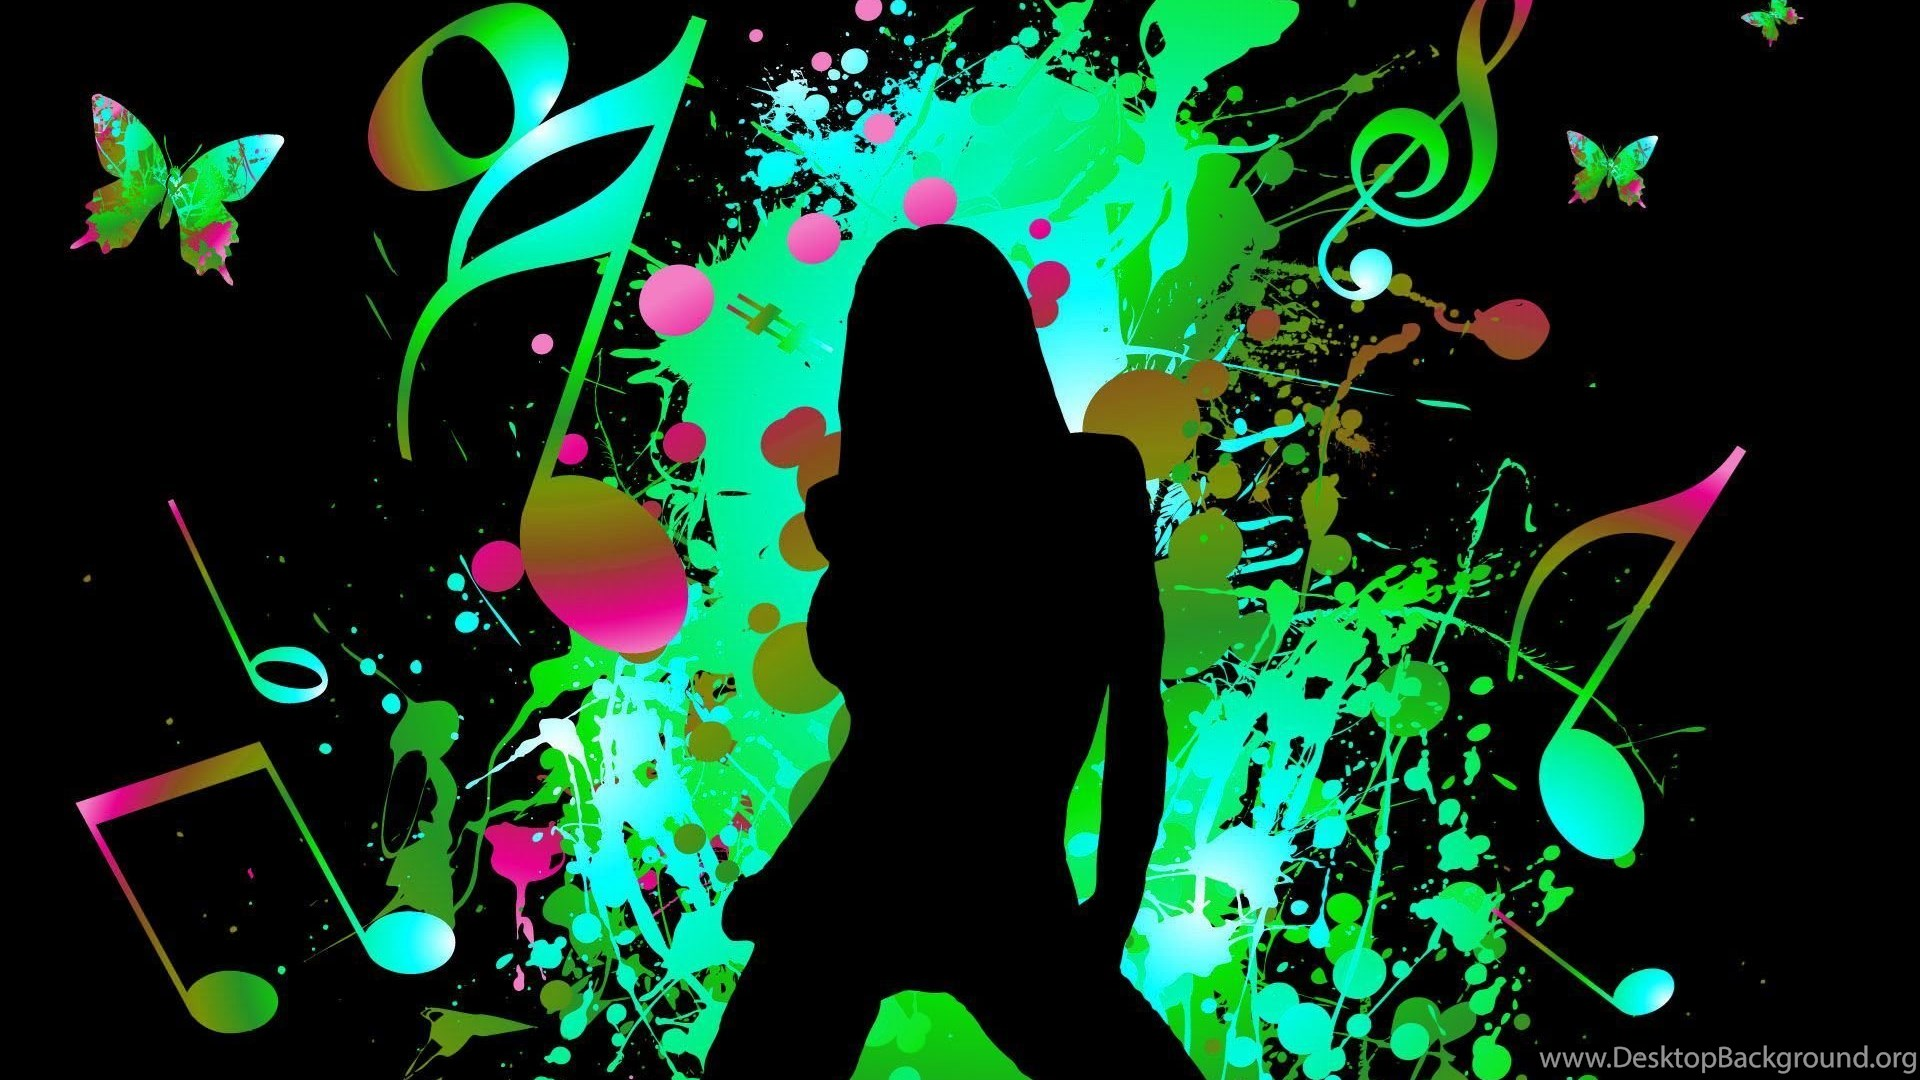 3D Wallpapers HD 3d Music 1080p For Desktop With